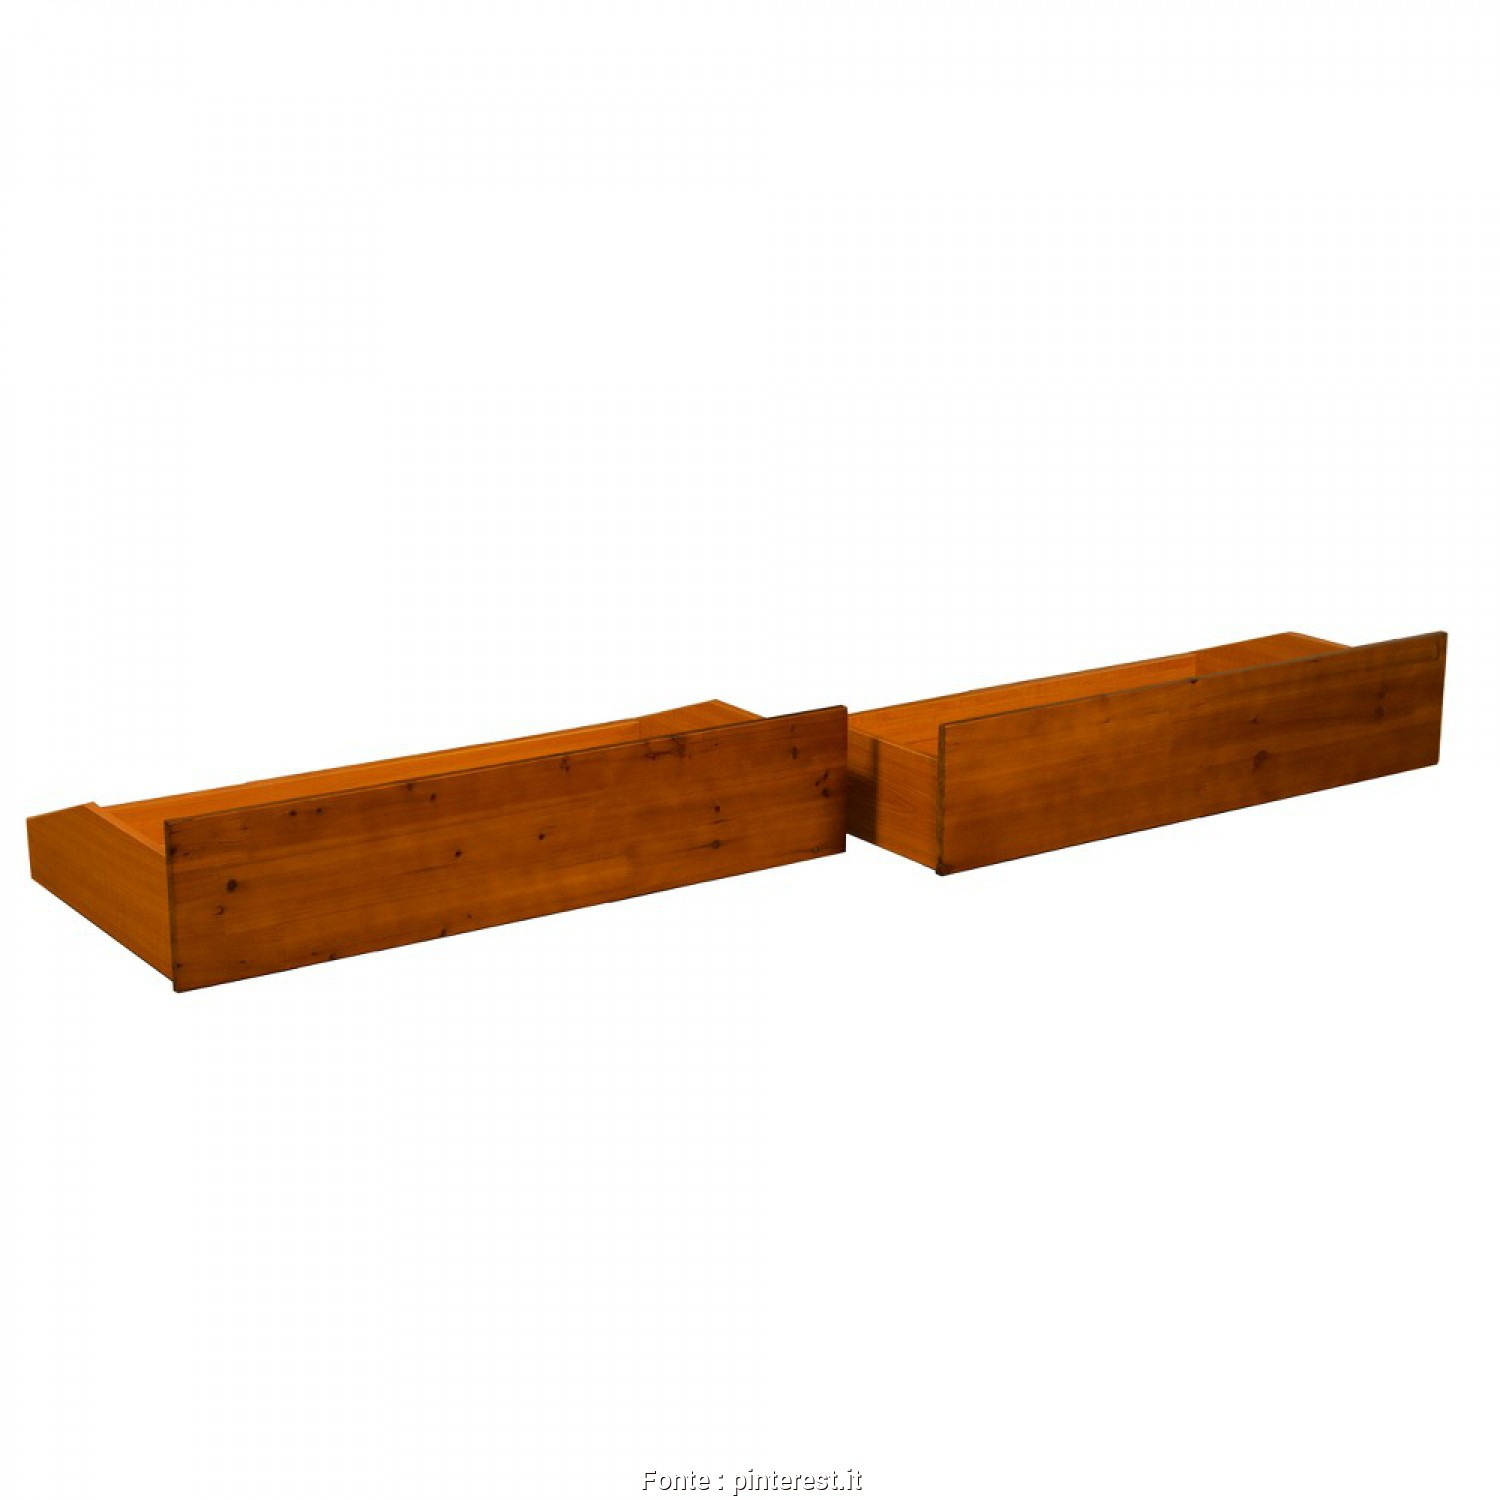 Divano Letto Ikea Exarby Misure, Costoso Gilbraltor, Wood Roll On, Floor Drawer Pair, Medium,, Queen/King